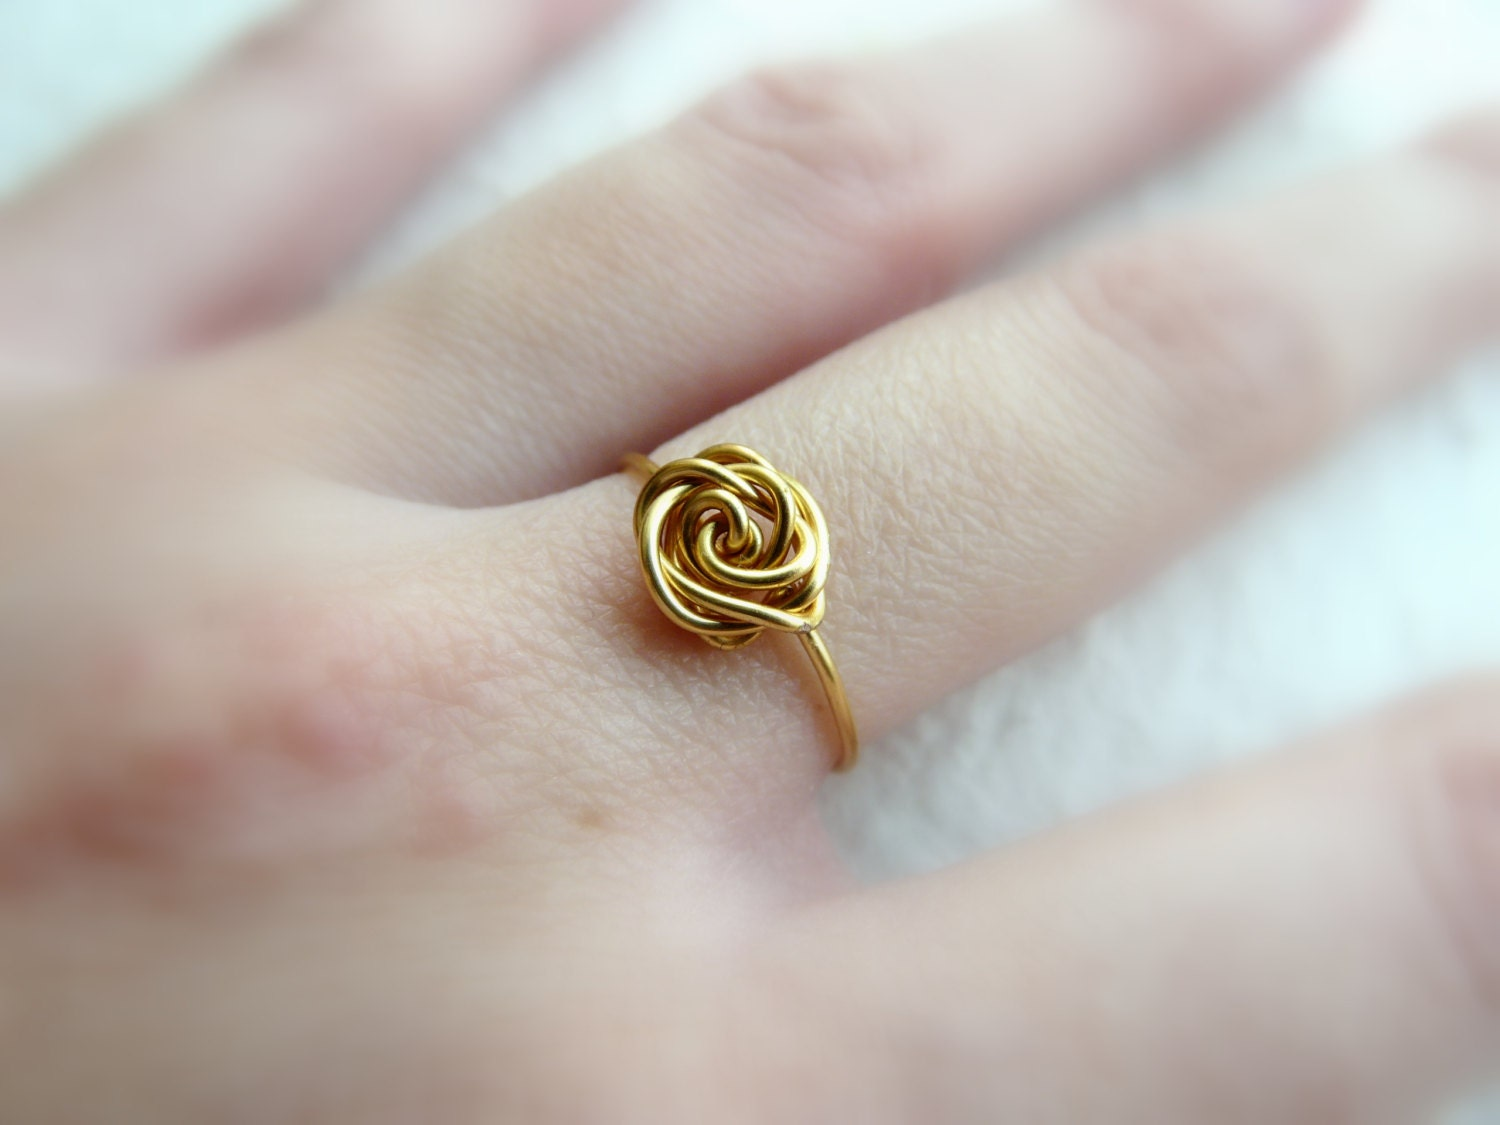 charm ring gold filled ring dainty ring rose ring delicate. Black Bedroom Furniture Sets. Home Design Ideas